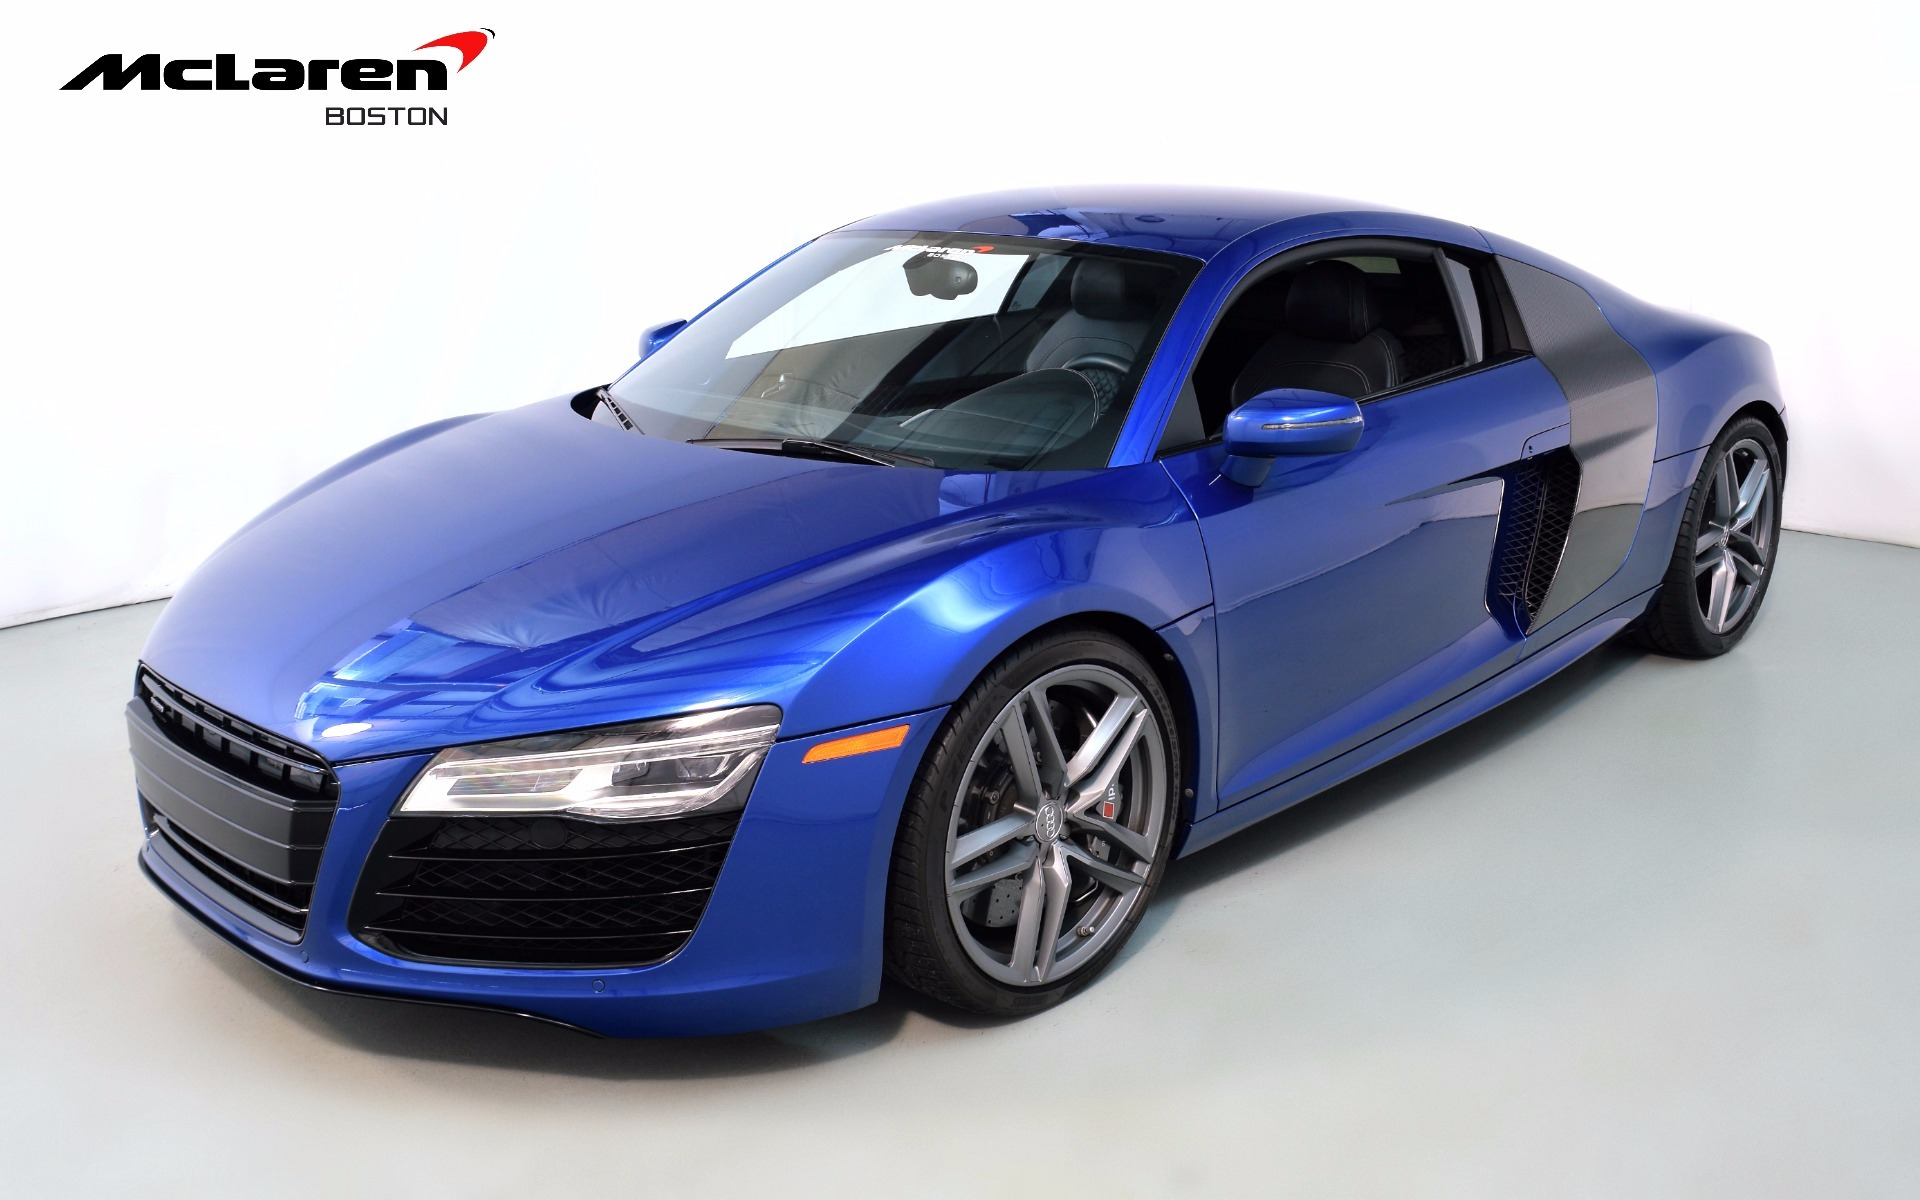 2014 audi r8 v10 for sale in norwell ma 002197a mclaren boston. Black Bedroom Furniture Sets. Home Design Ideas